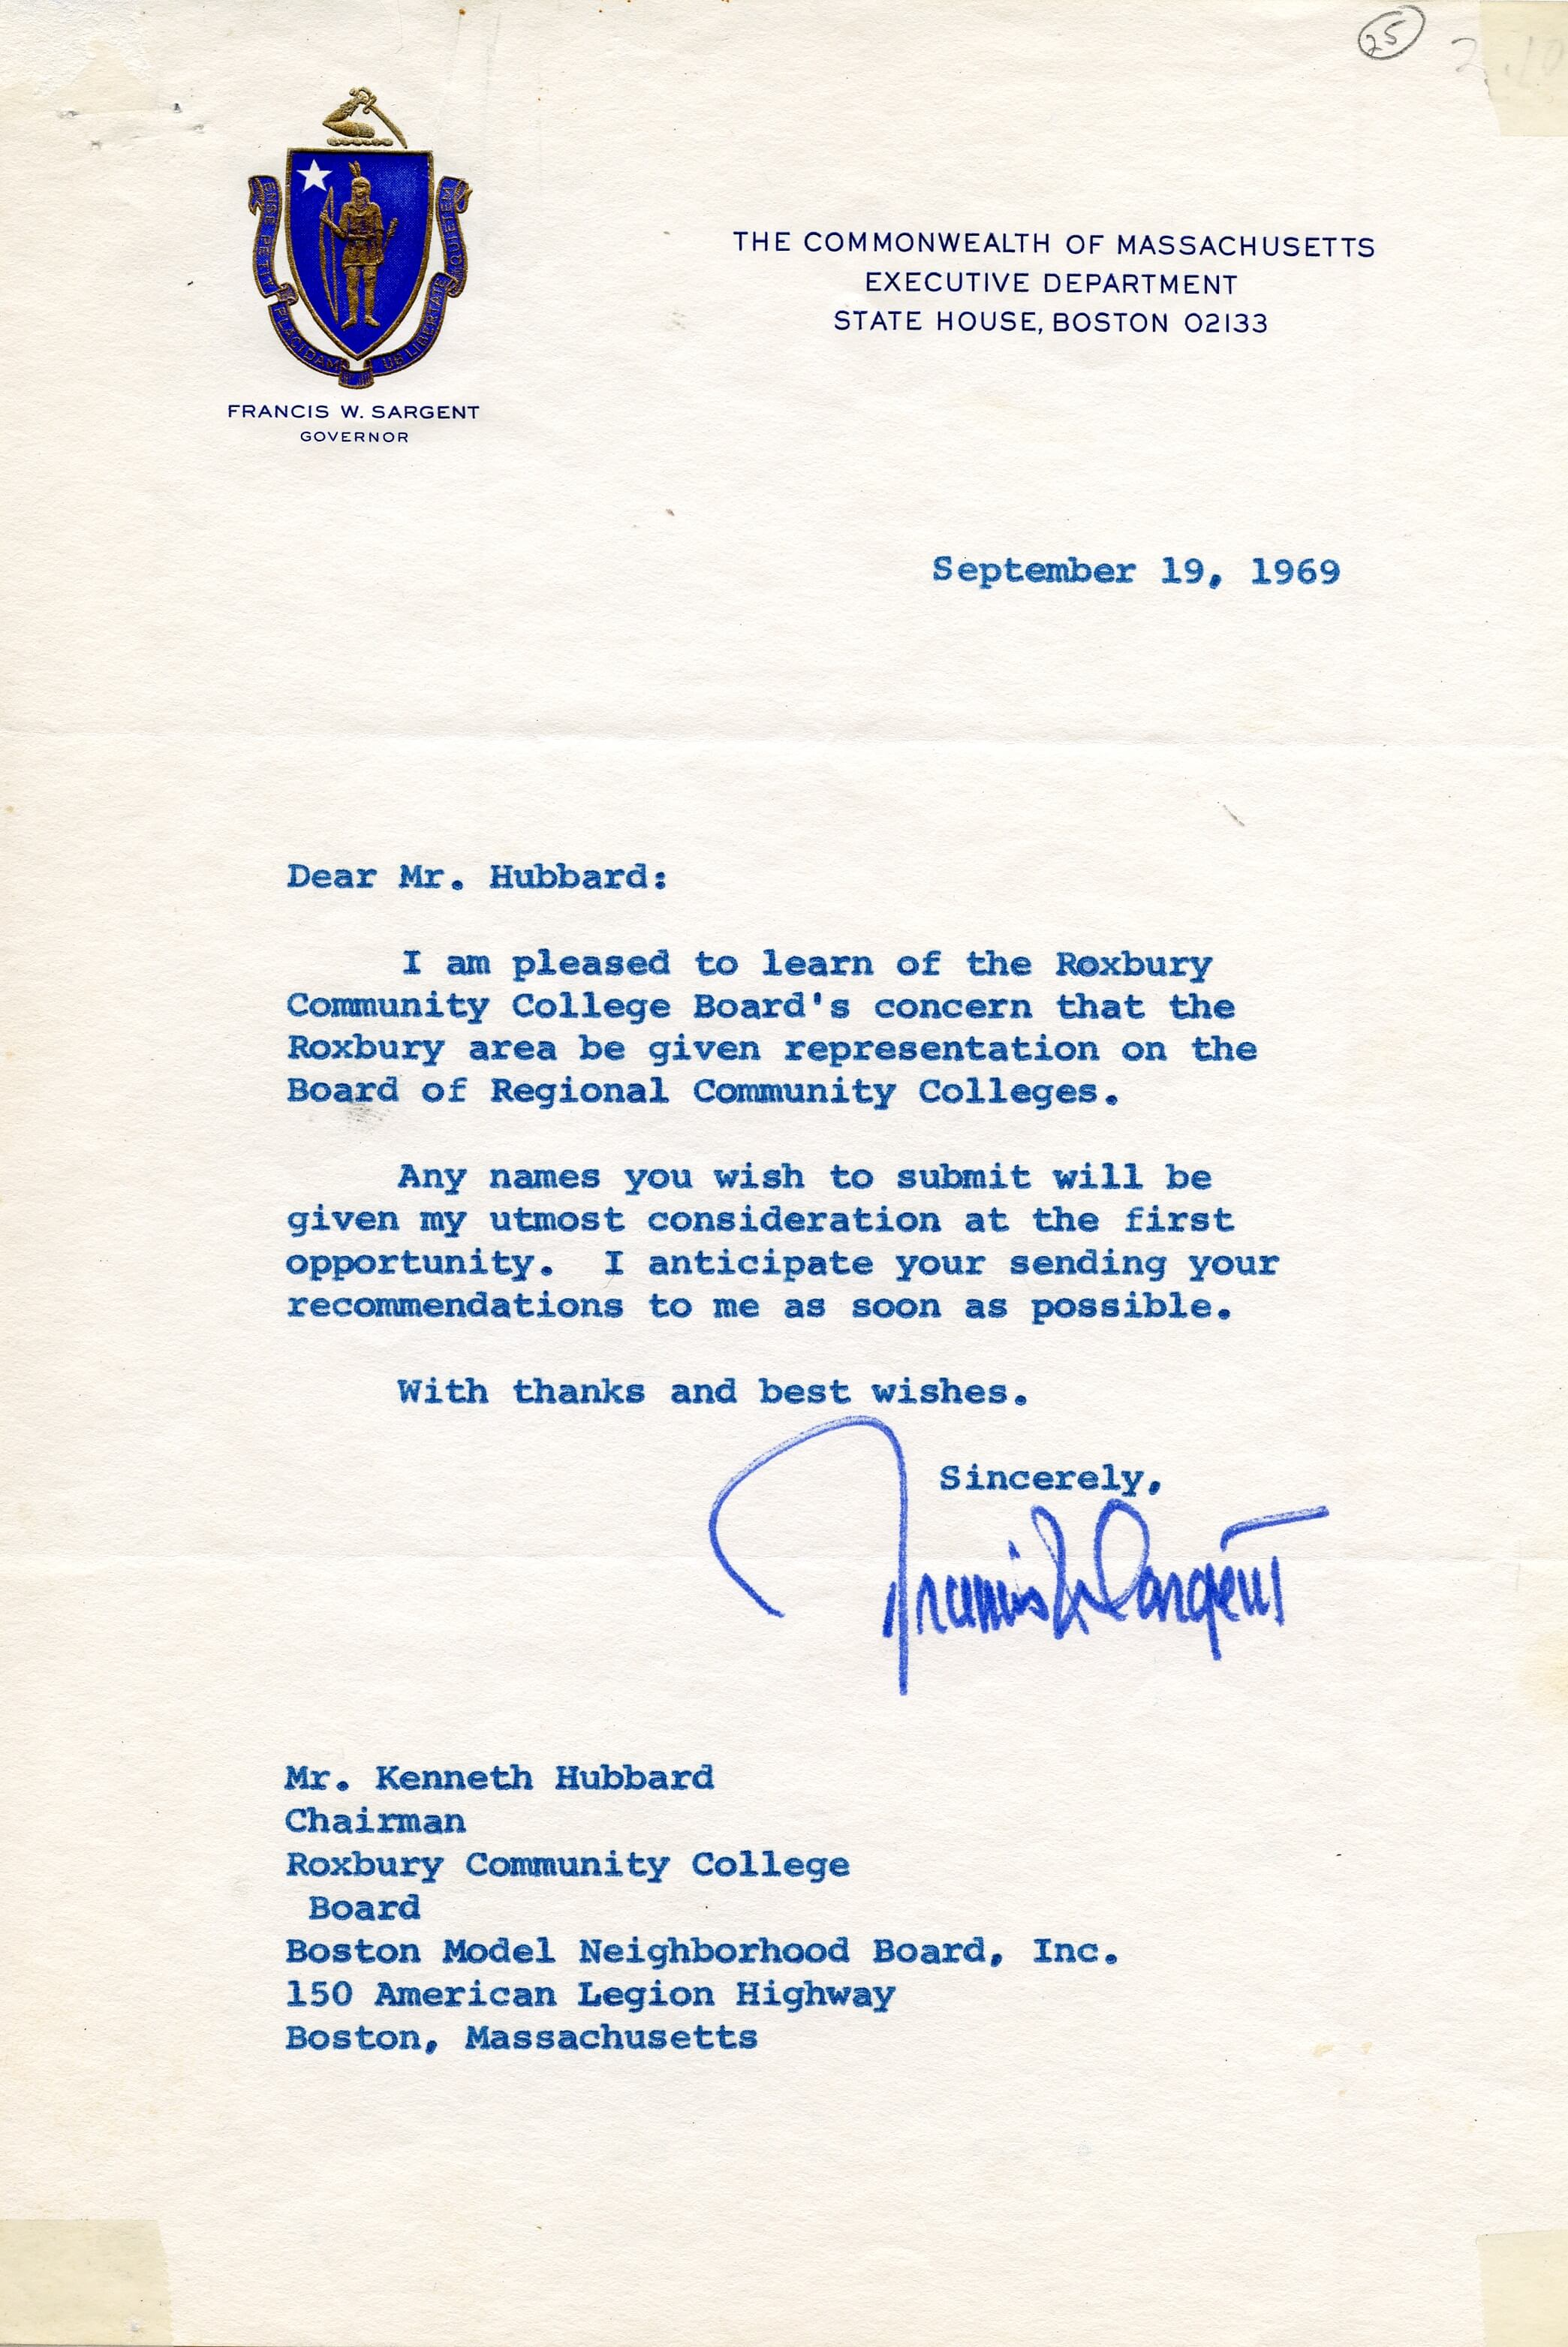 LETTER FROM MASSACHUSETTS GOVERNOR FRANCIS SARGENT